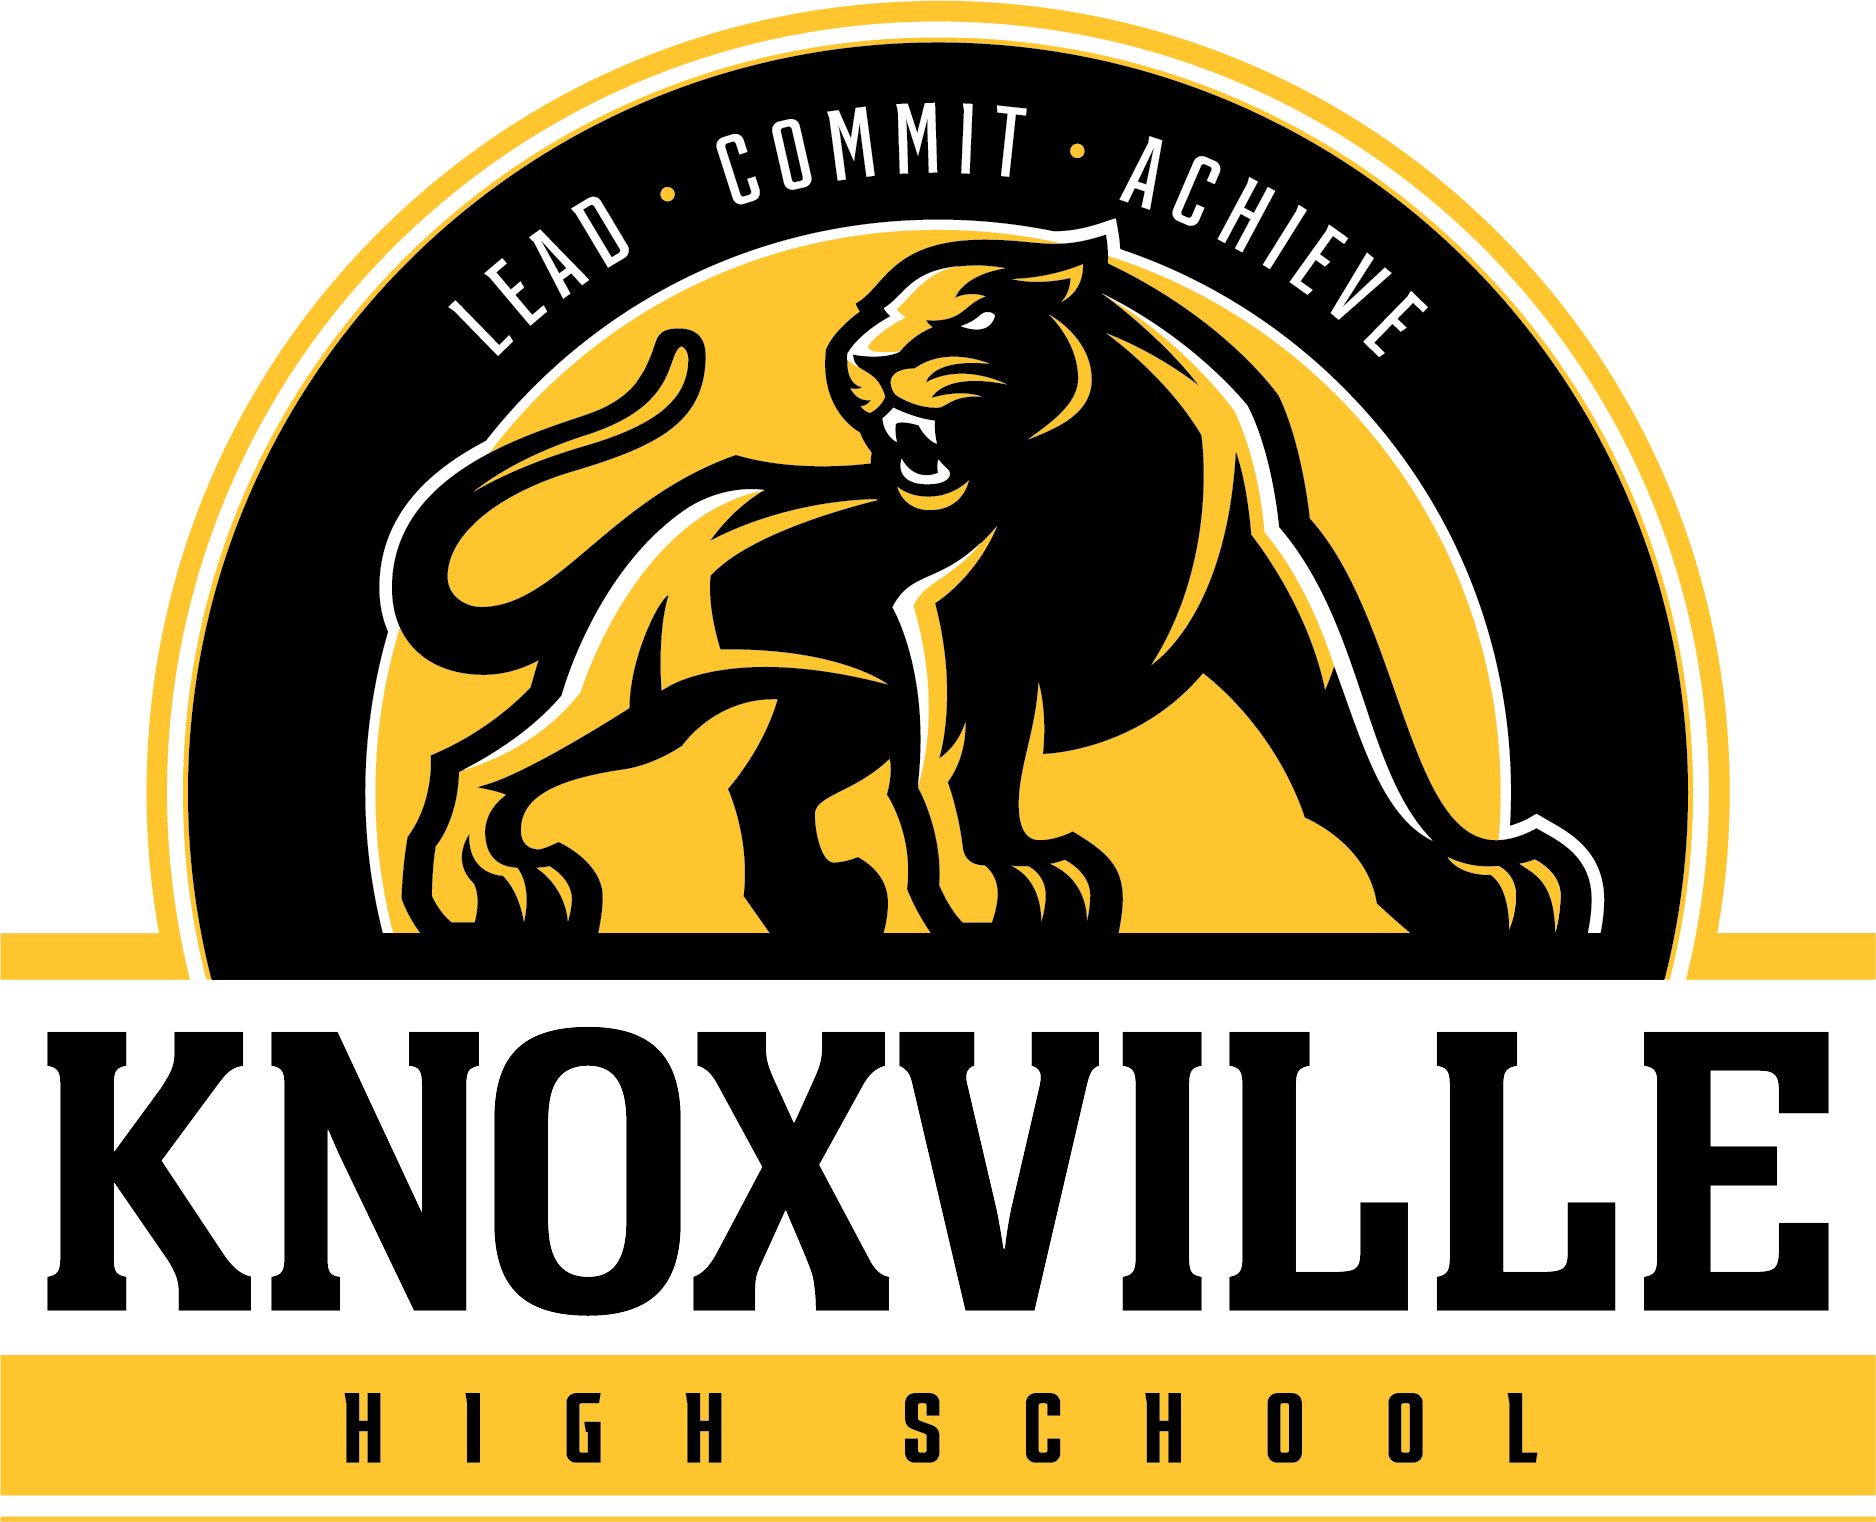 Knoxville HS: Lead-Commit-Achieve